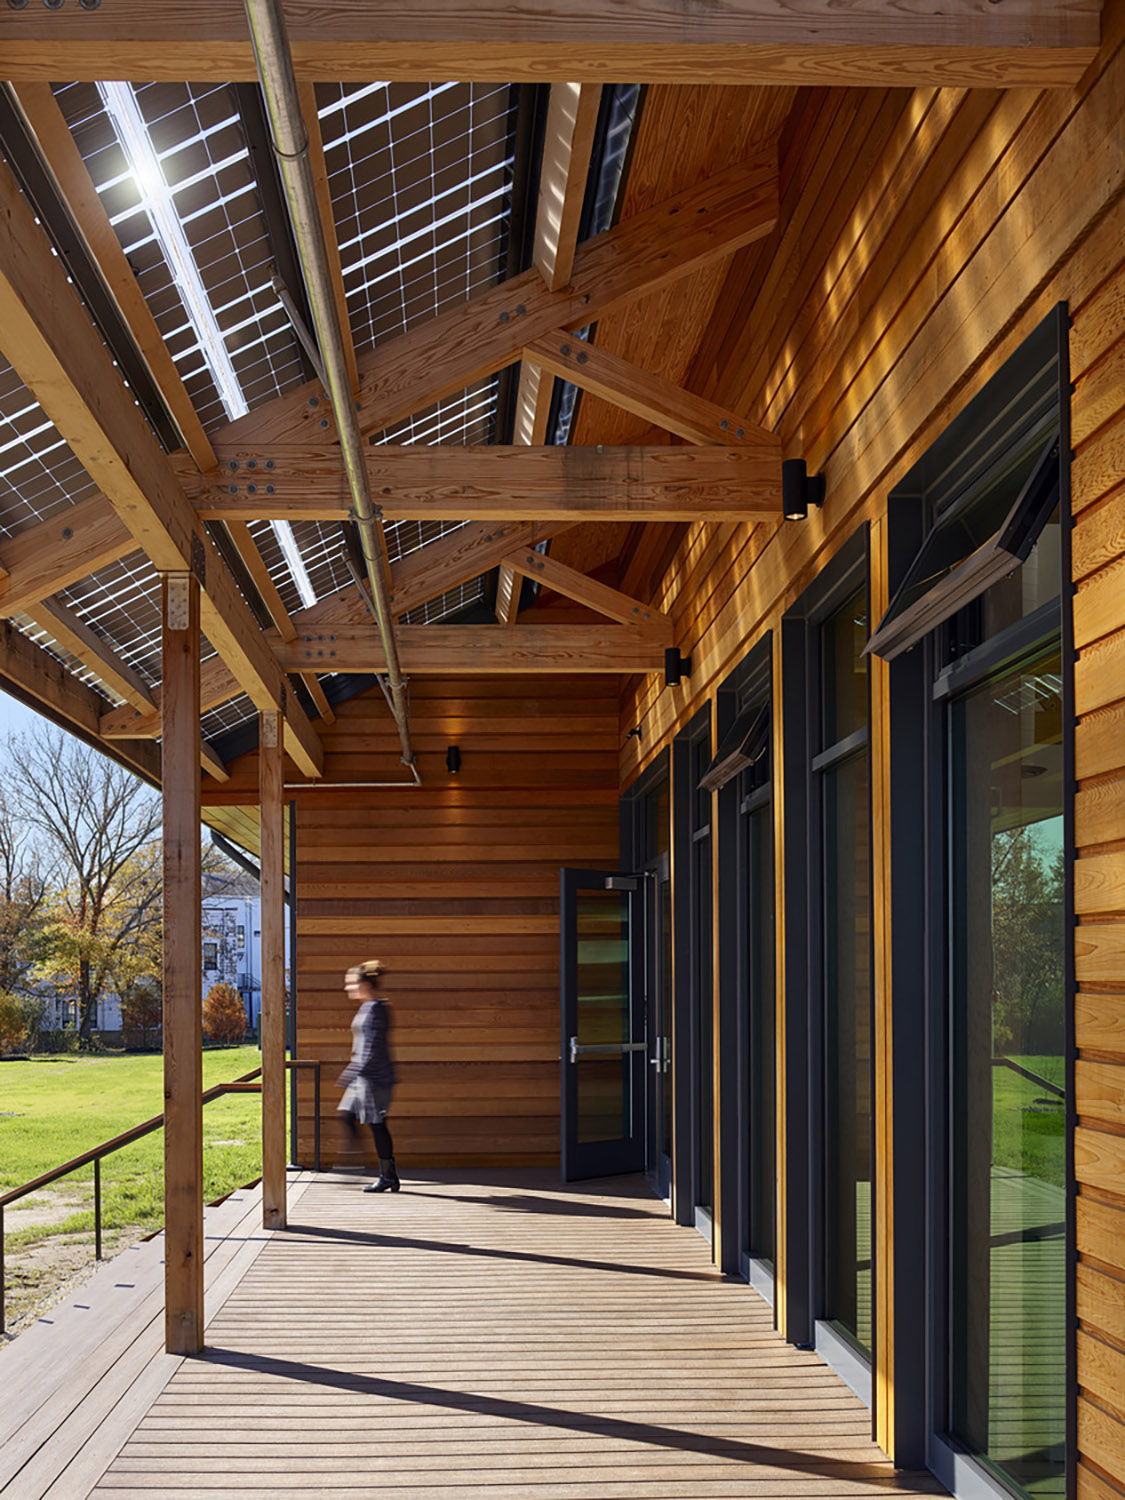 Warm materiality and dappled light welcome users ©Tom Holdsworth